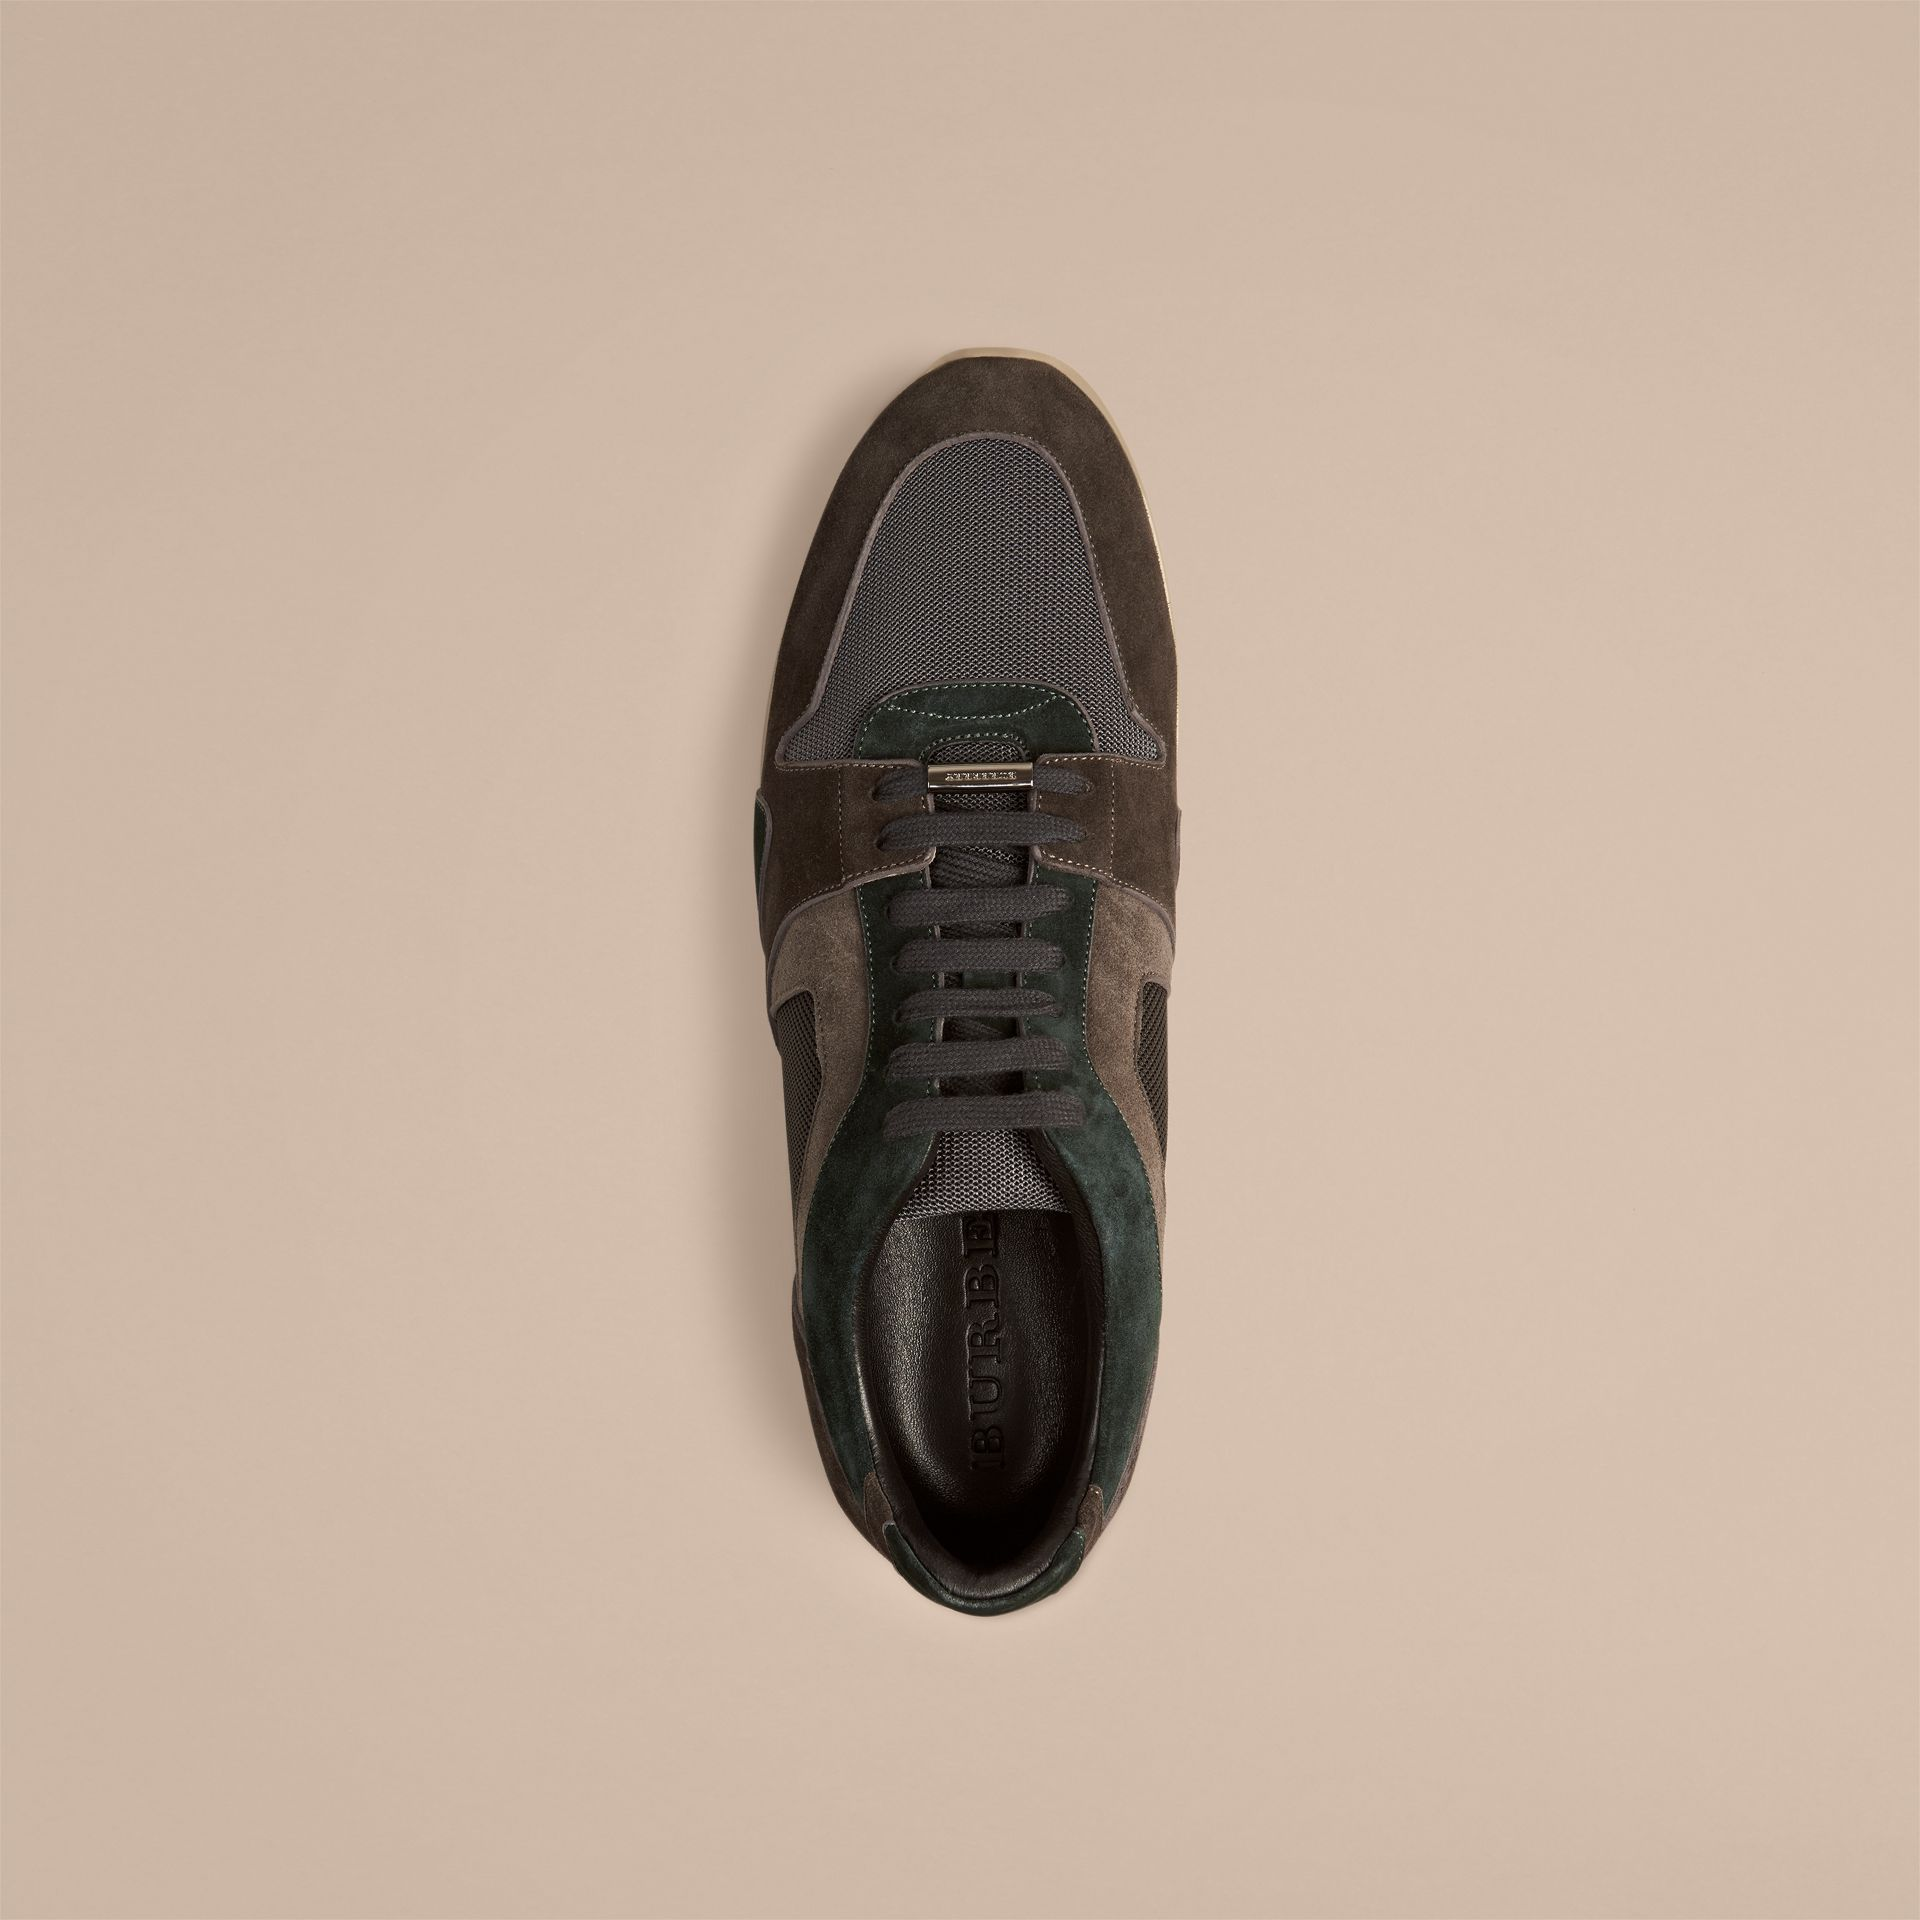 Dark storm grey The Field Sneaker in Colour Block Suede and Mesh Dark Storm Grey - gallery image 2